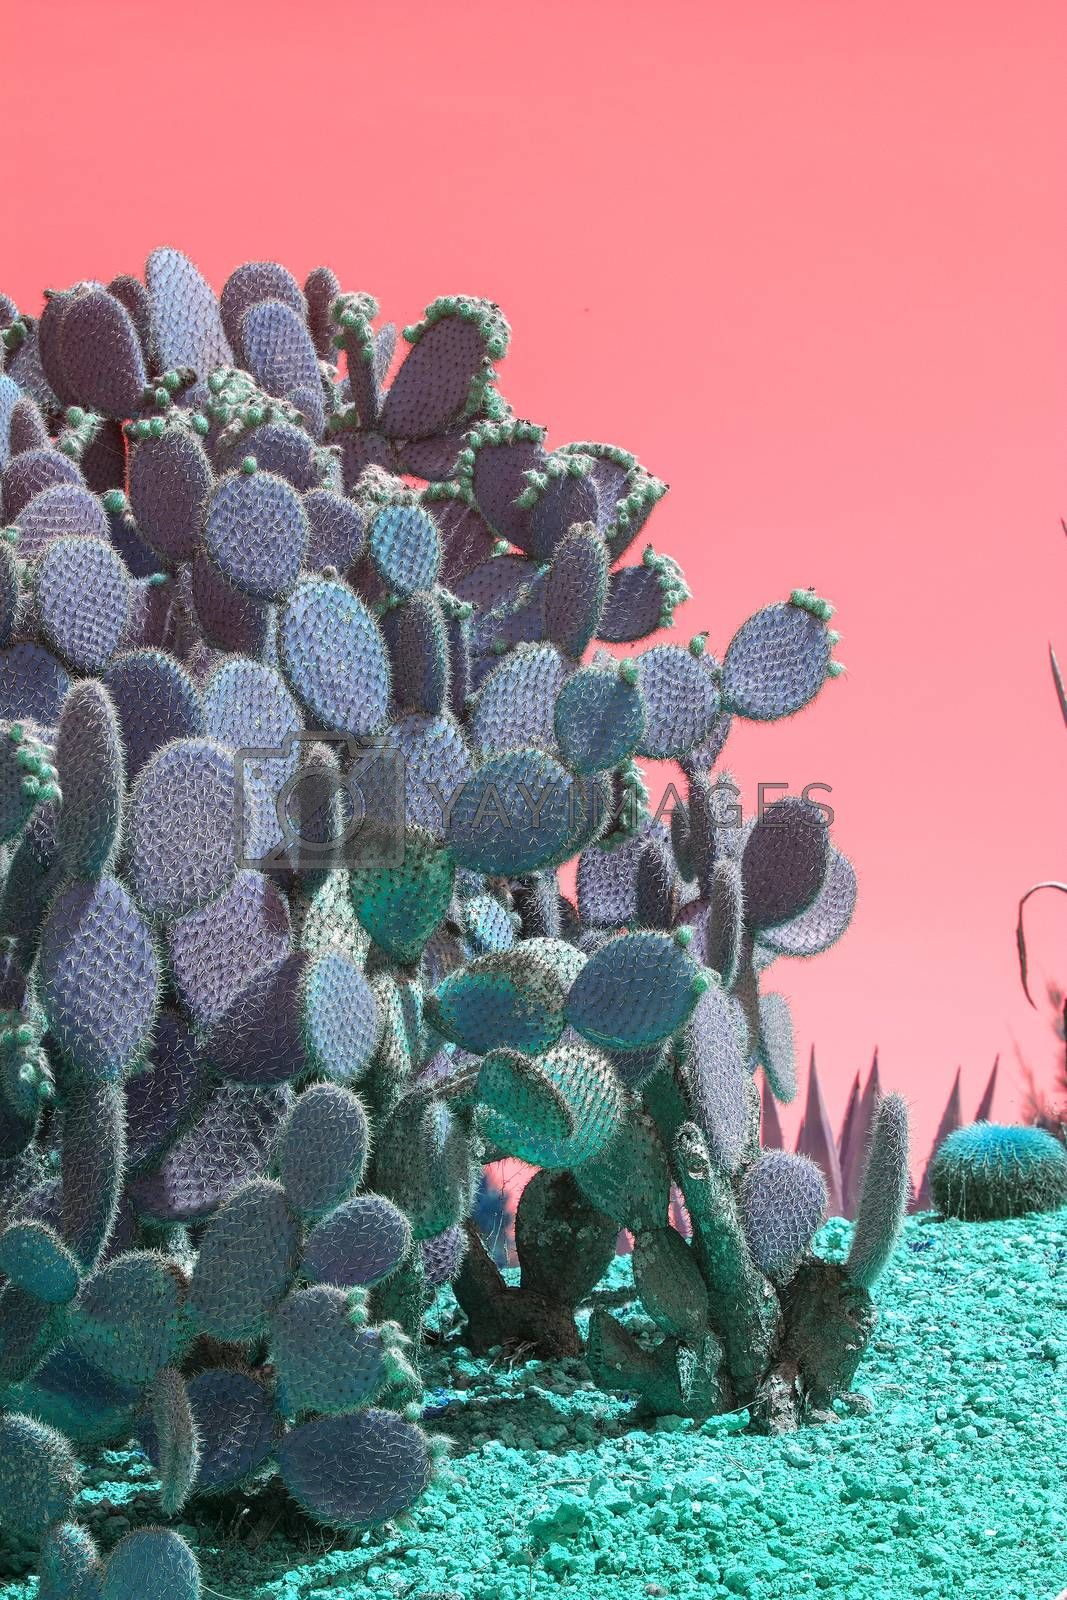 Surrealistic abstract cactus and succulent plants in arid landscape with pink red sky